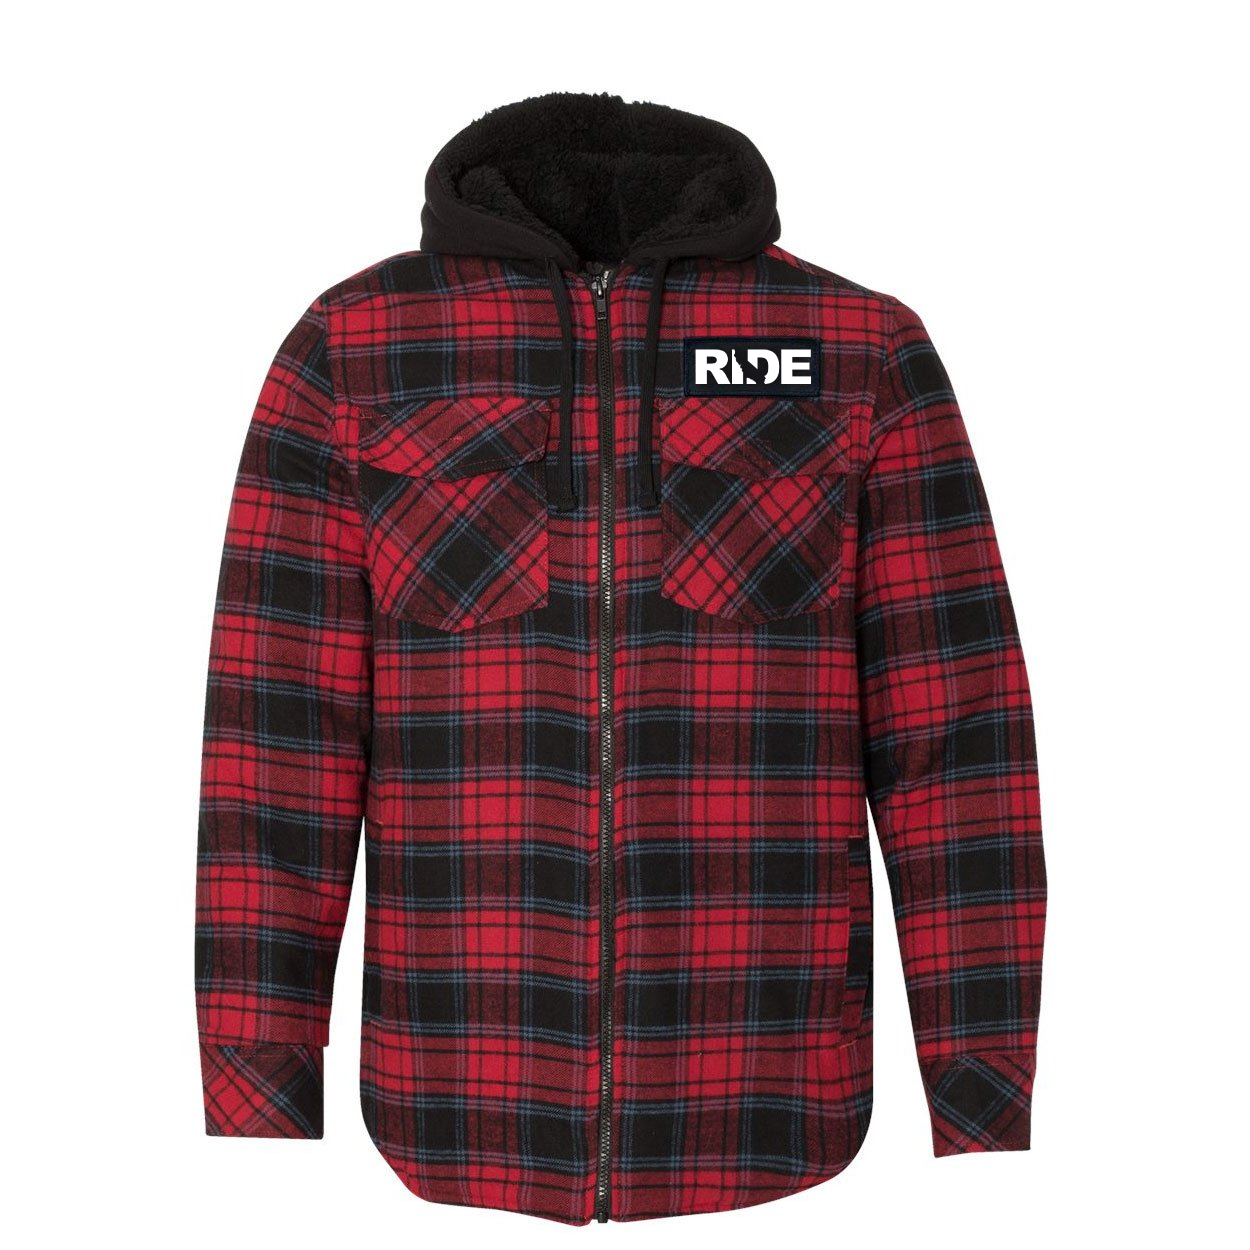 Ride California Classic Unisex Full Zip Woven Patch Hooded Flannel Jacket Red/Black Buffalo (White Logo)